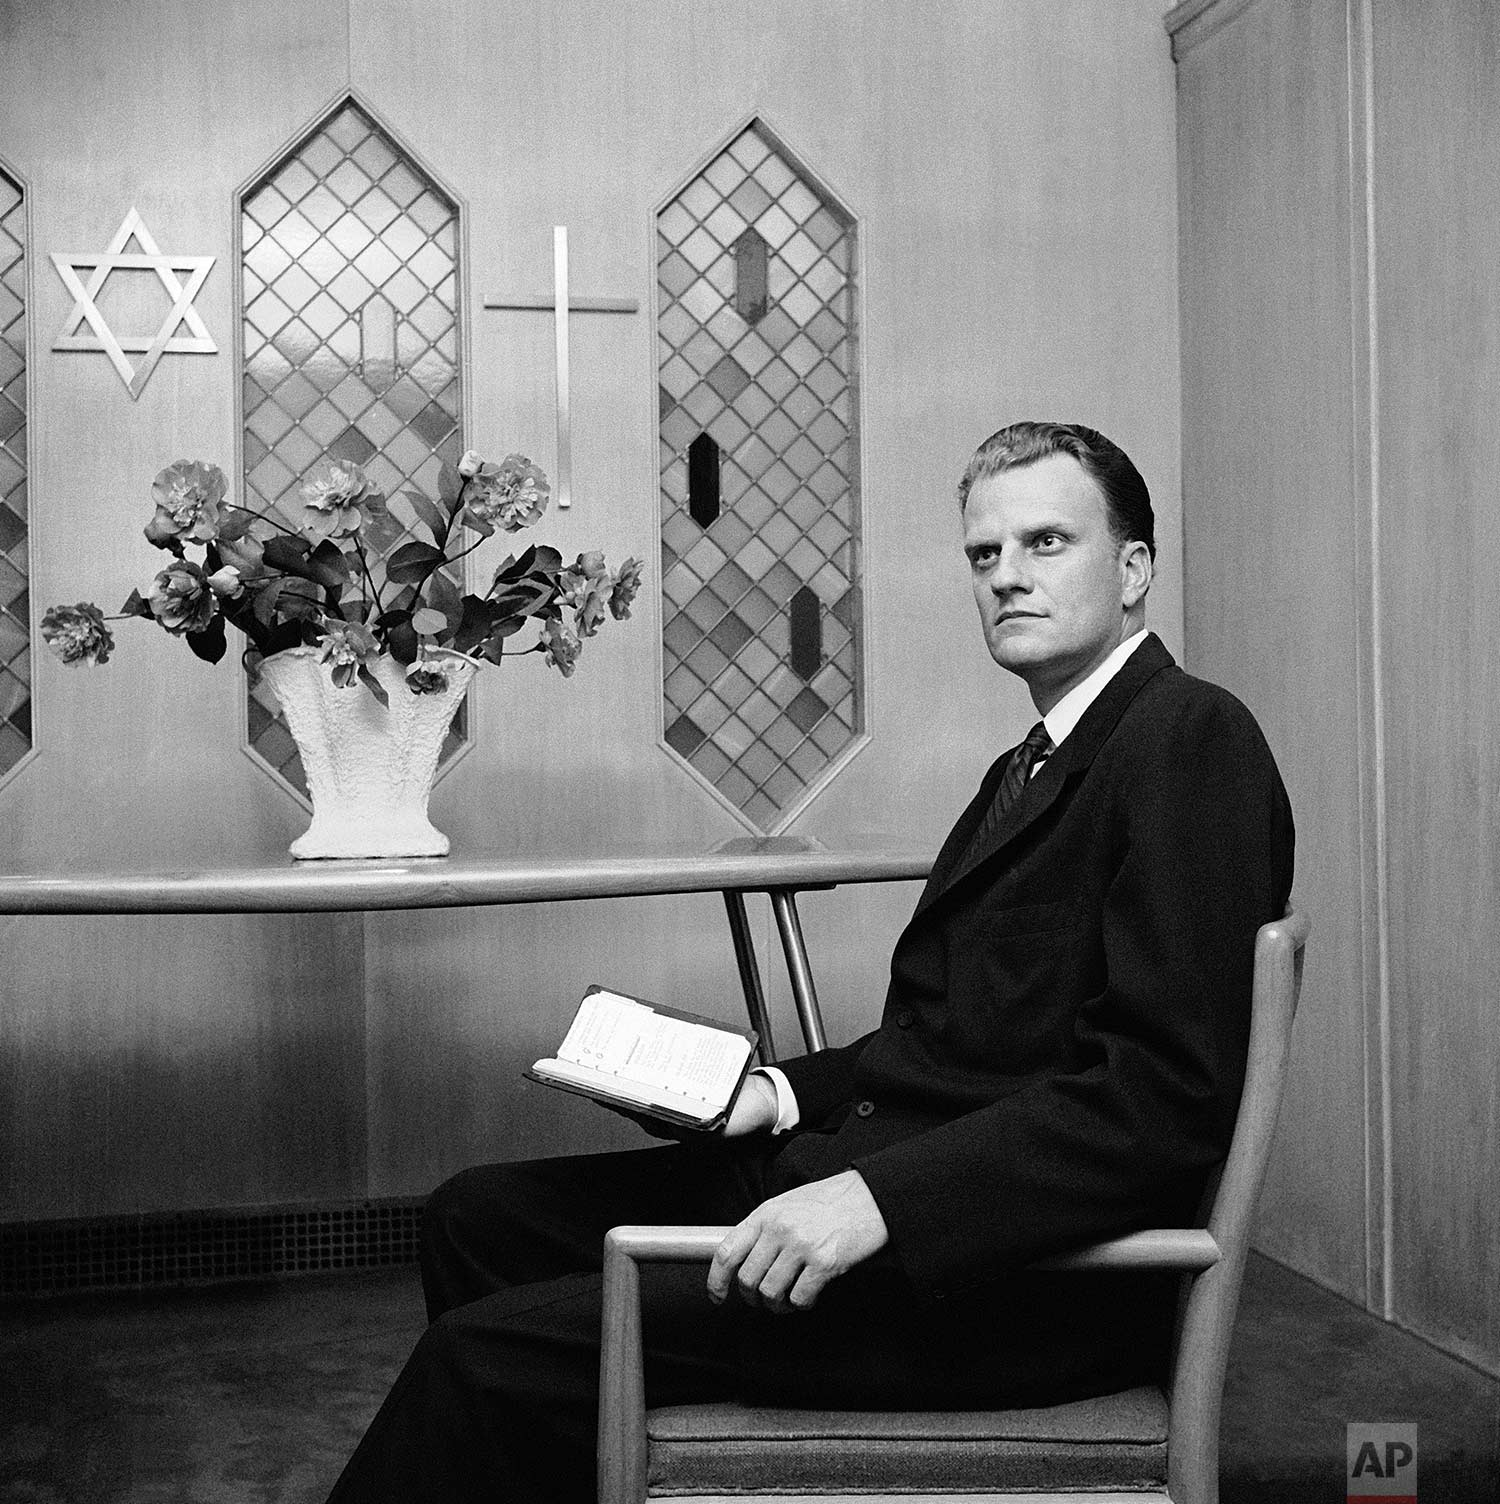 Evangelist Billy Graham shown in meditation, October 25, 1957 in the chapel in the New York Hotel for Guidance. (AP Photo/Harvey Lippman)